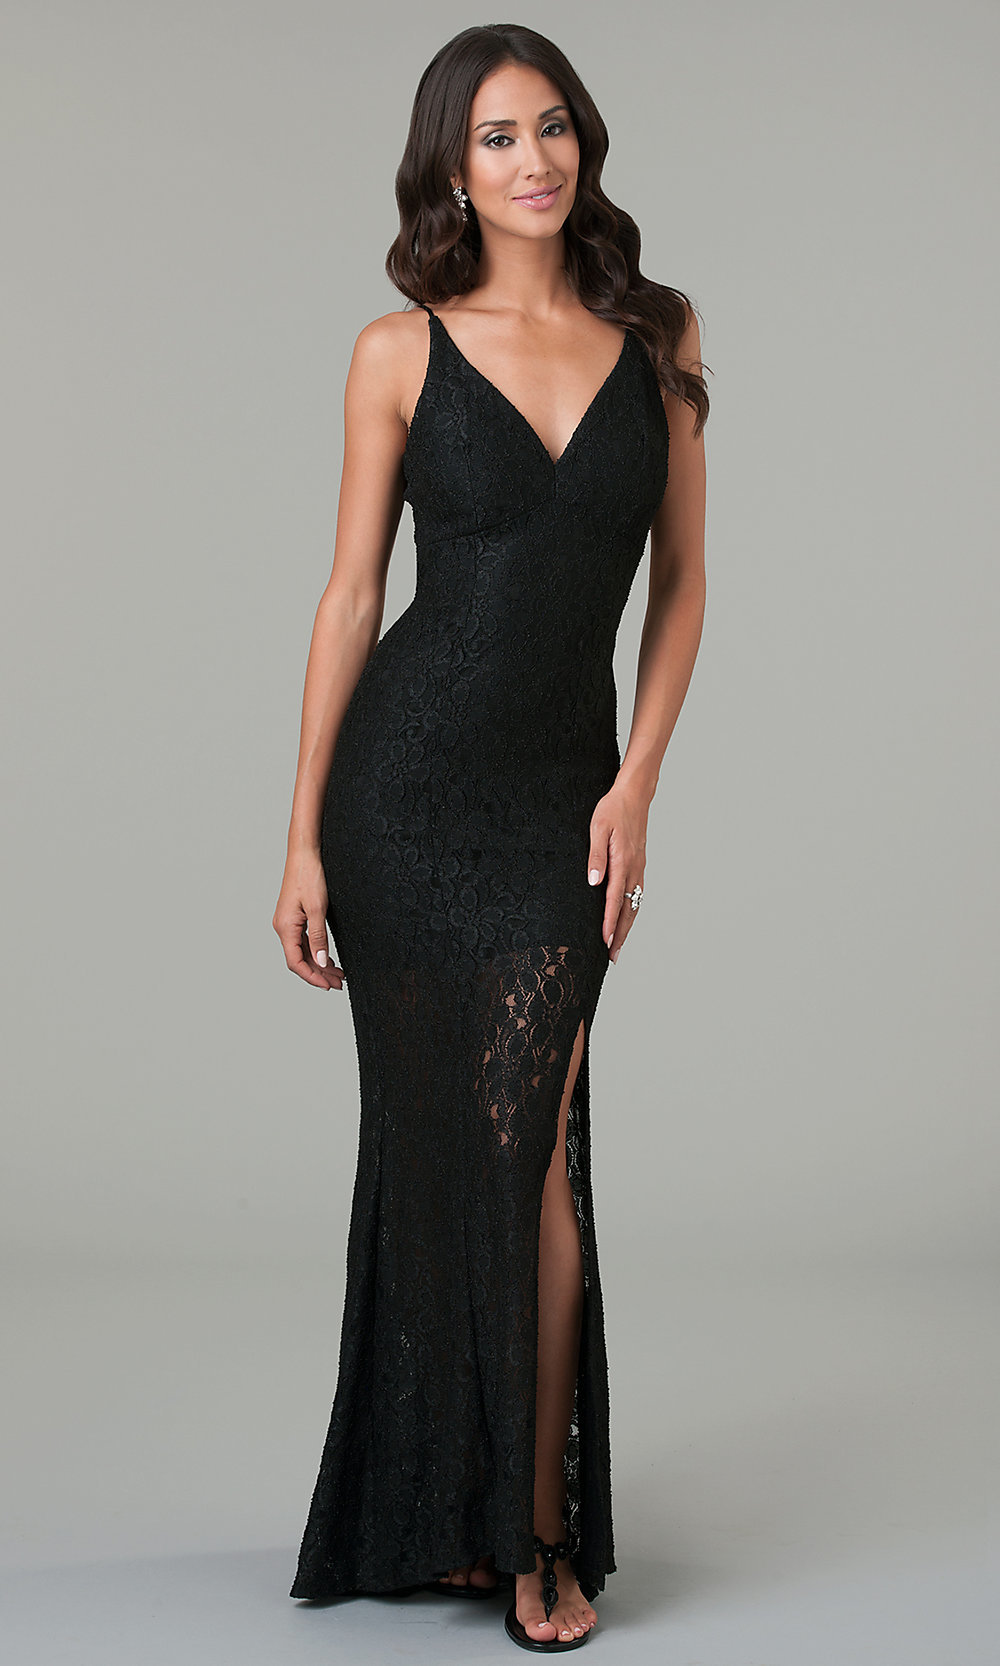 Spaghetti Strap Long Black Lace Prom Gown- PromGirl